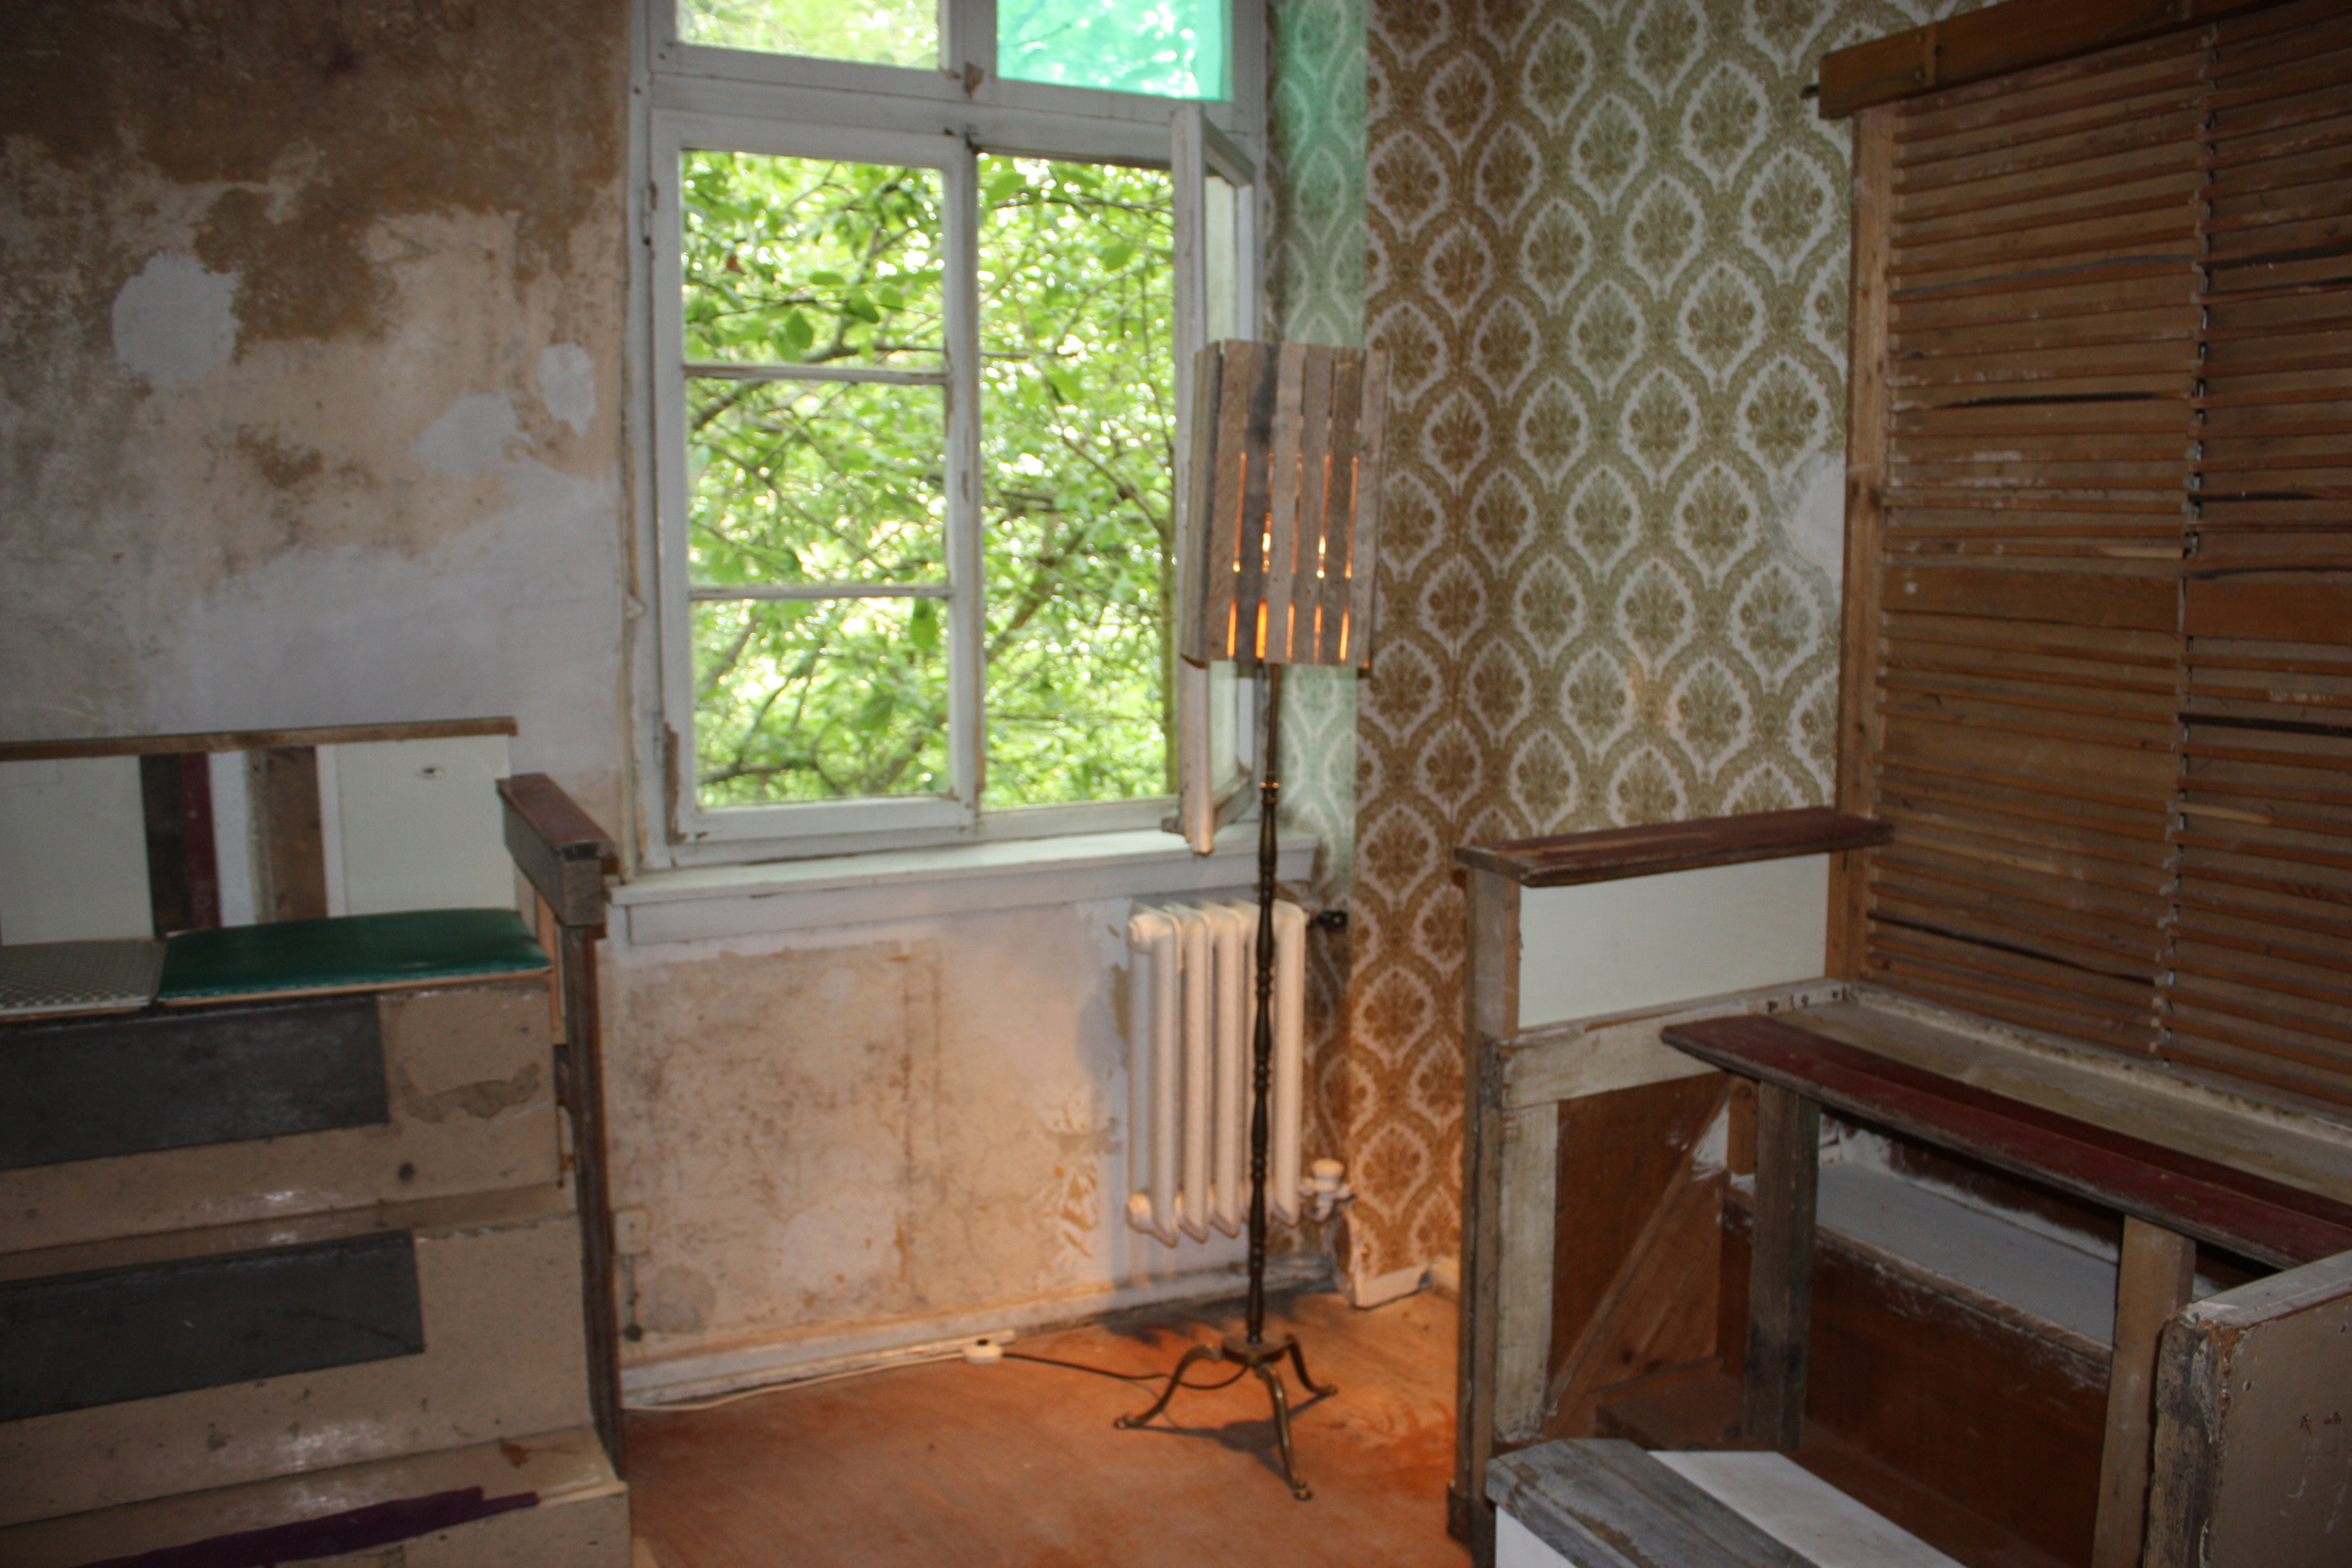 Theaster Gate. Room detail in 12 ballads for the Huguenot House, (2012). © Lucy Rees